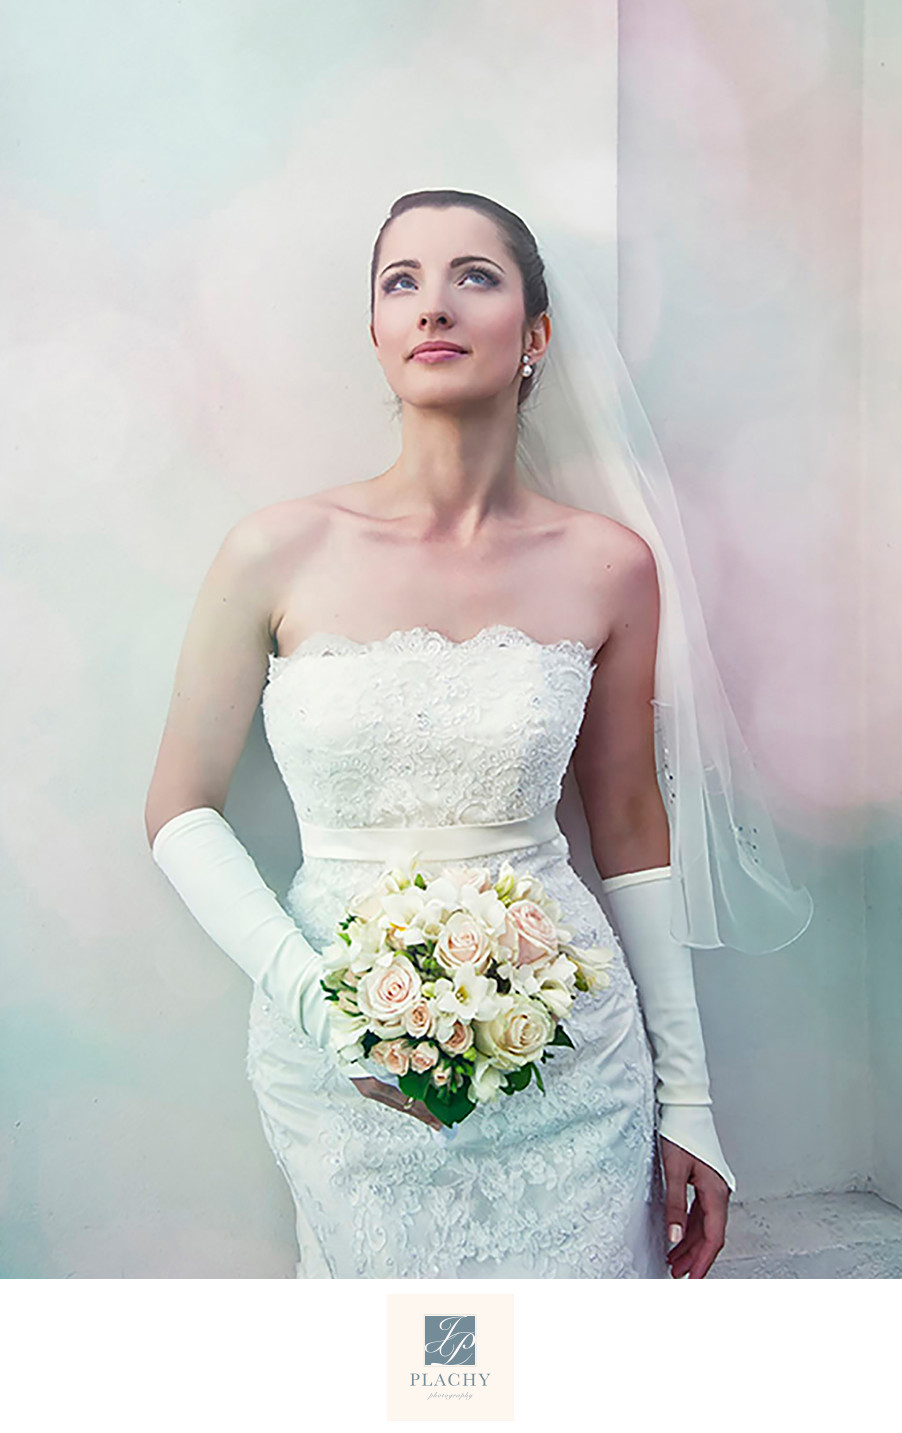 Wedding Photography of the Bride Hotel Portrait Firenze